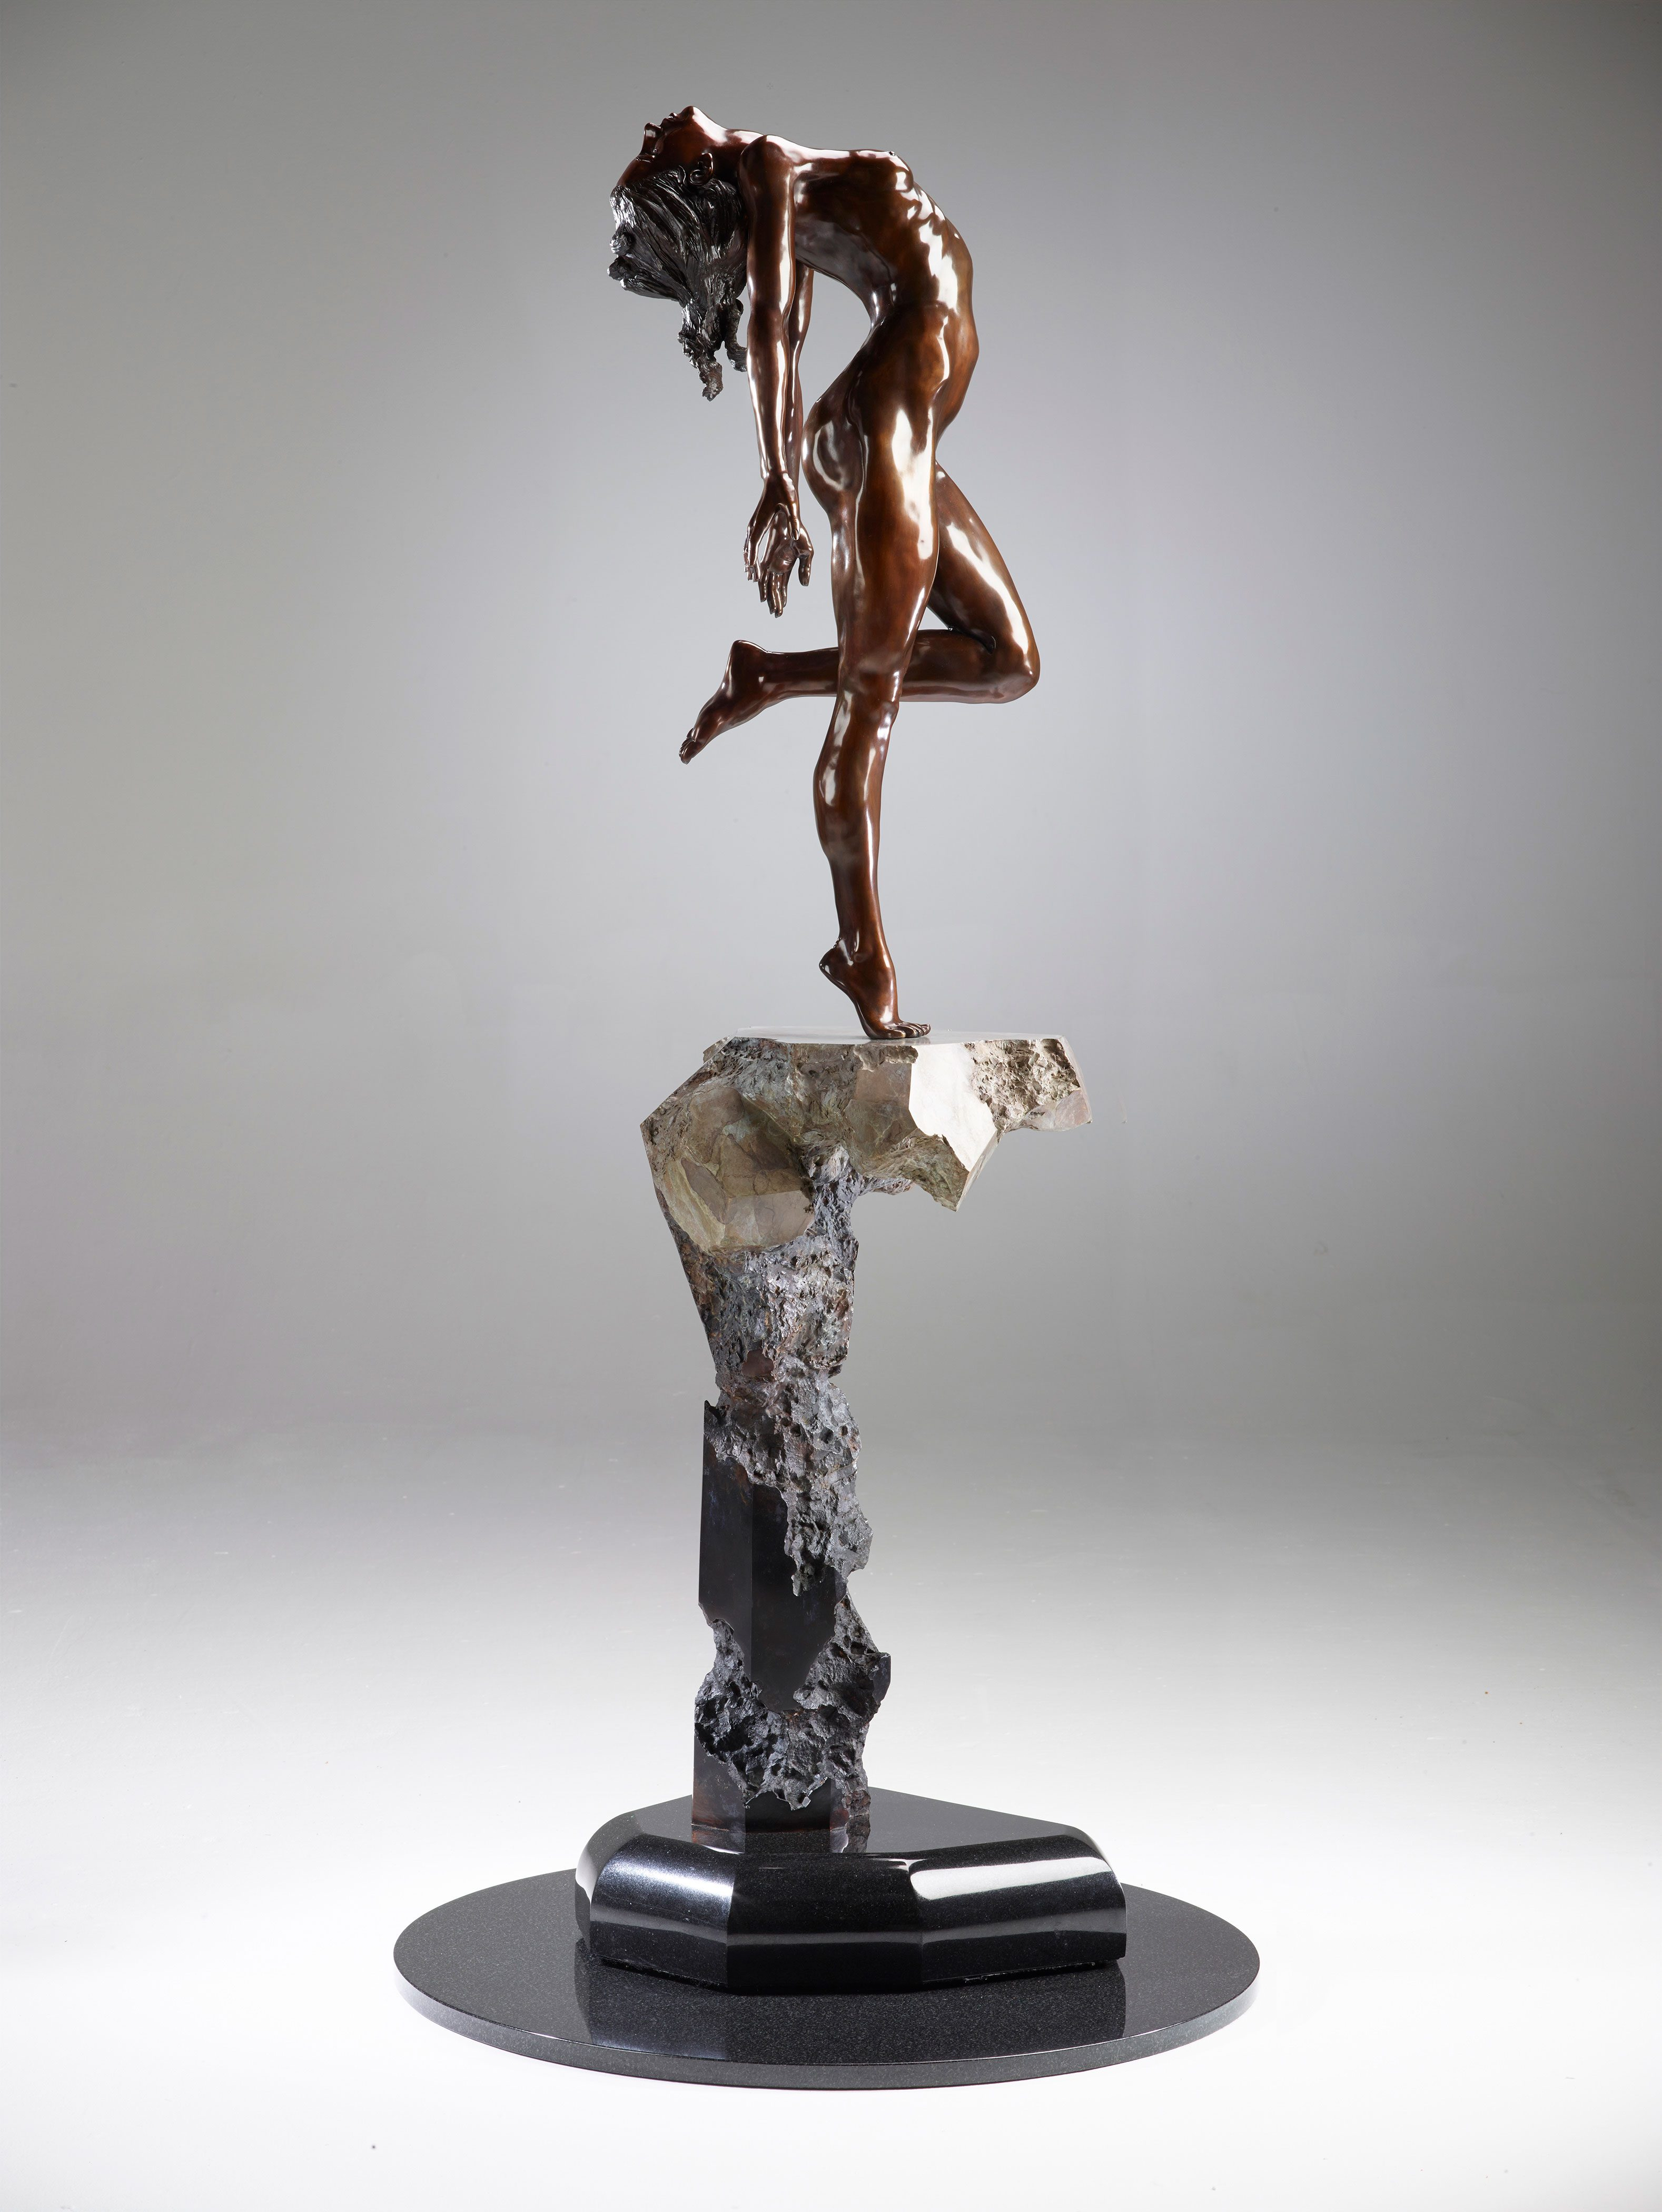 Sculpture: Turning Point by Victor Fisher